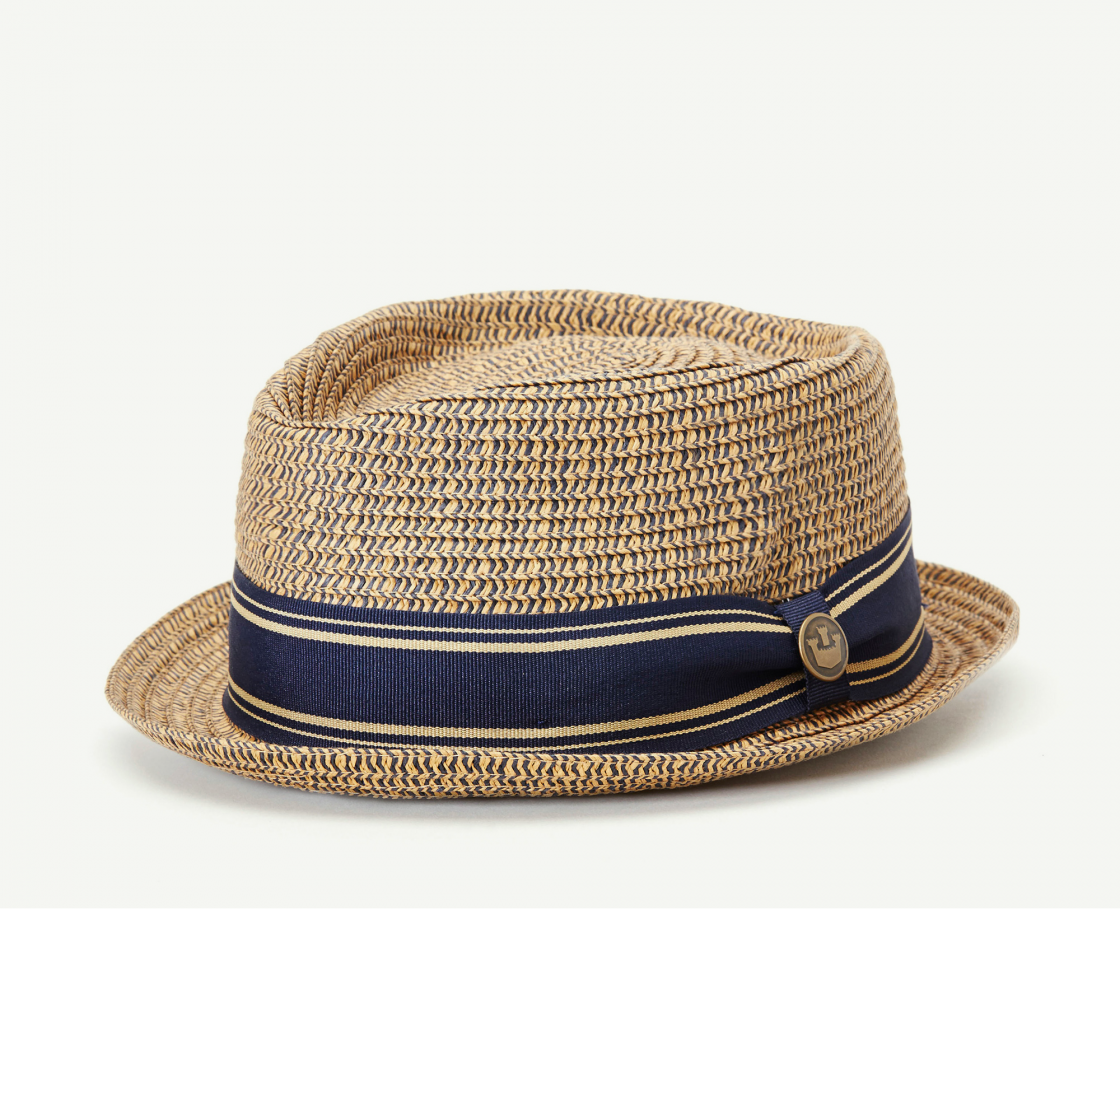 Big Boy Kris Tan Straw Porkpie Fedora hat front view e81d16b9c5ca